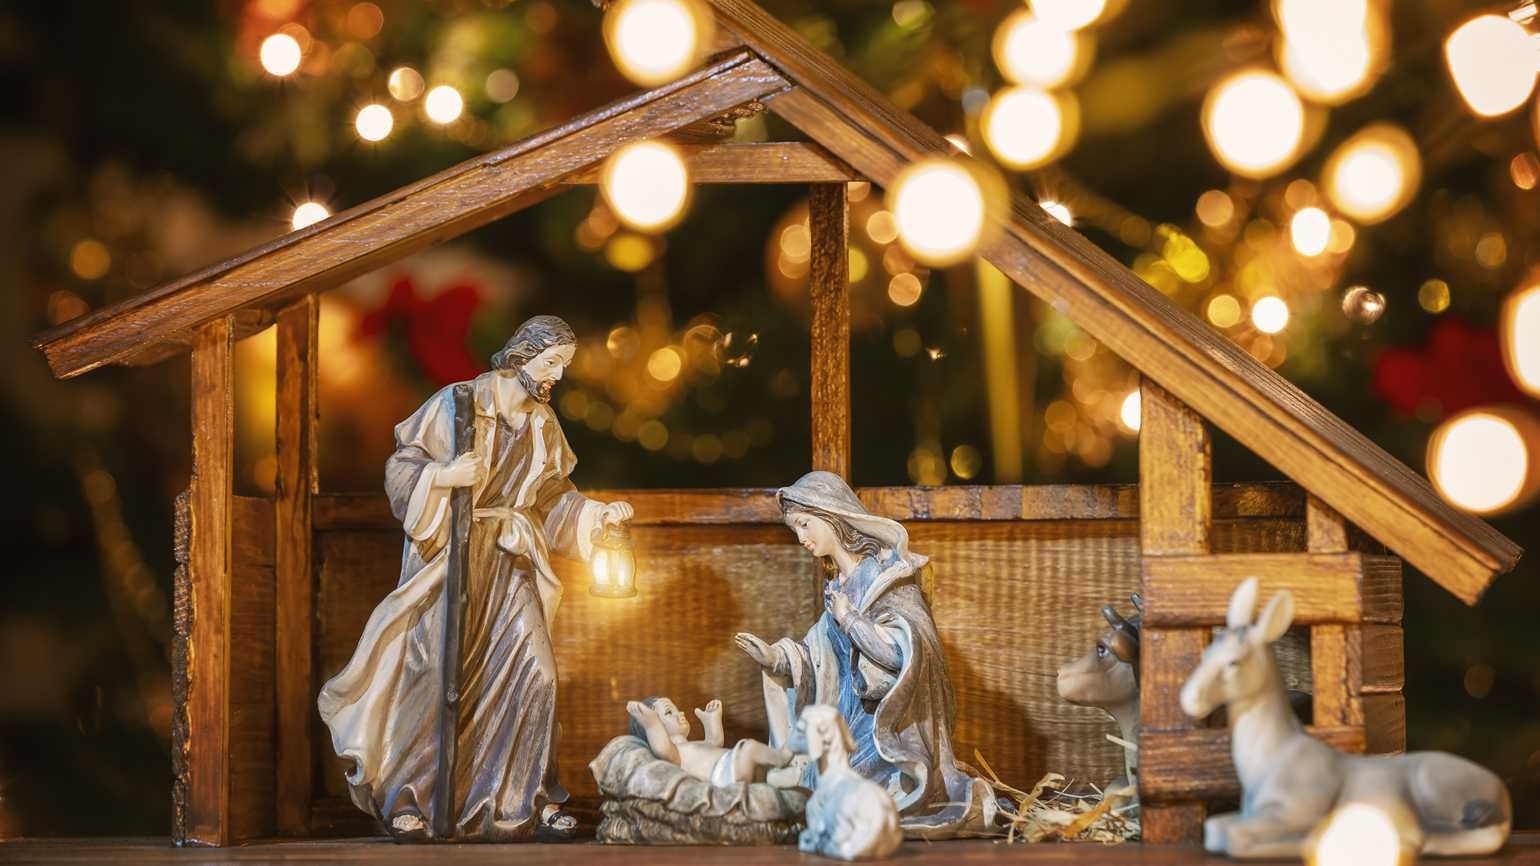 Christmas Manger scene with figurines including Jesus, Mary, Joseph and sheep.